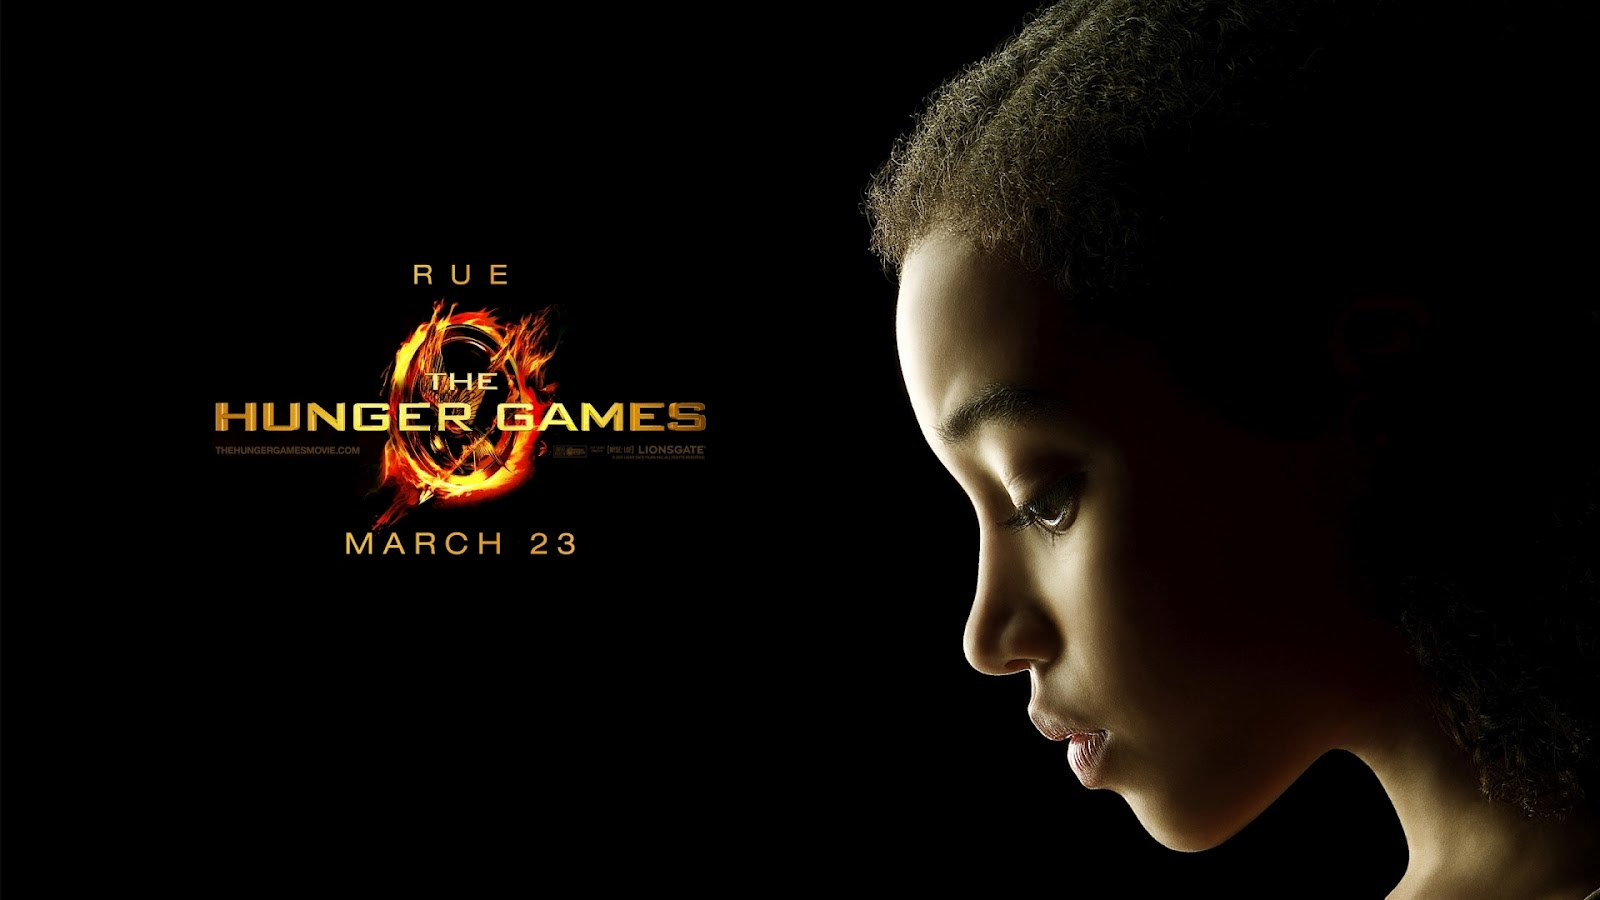 The hunger games wallpaper 13 wallpapersbq download wallpaper voltagebd Image collections